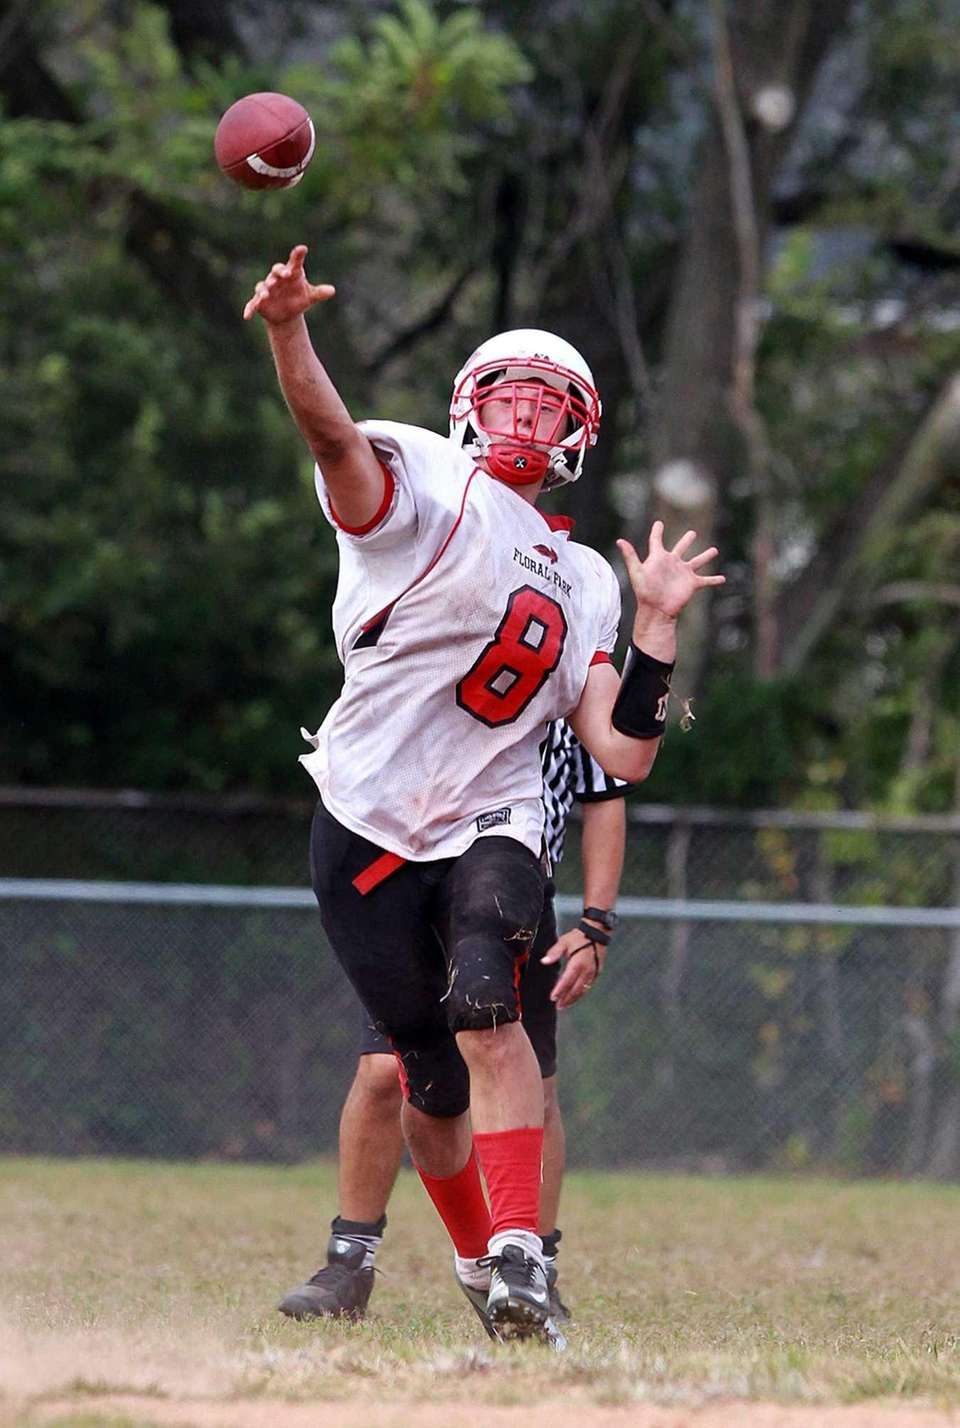 Floral Park's Connor Vidasolo fires a strike to